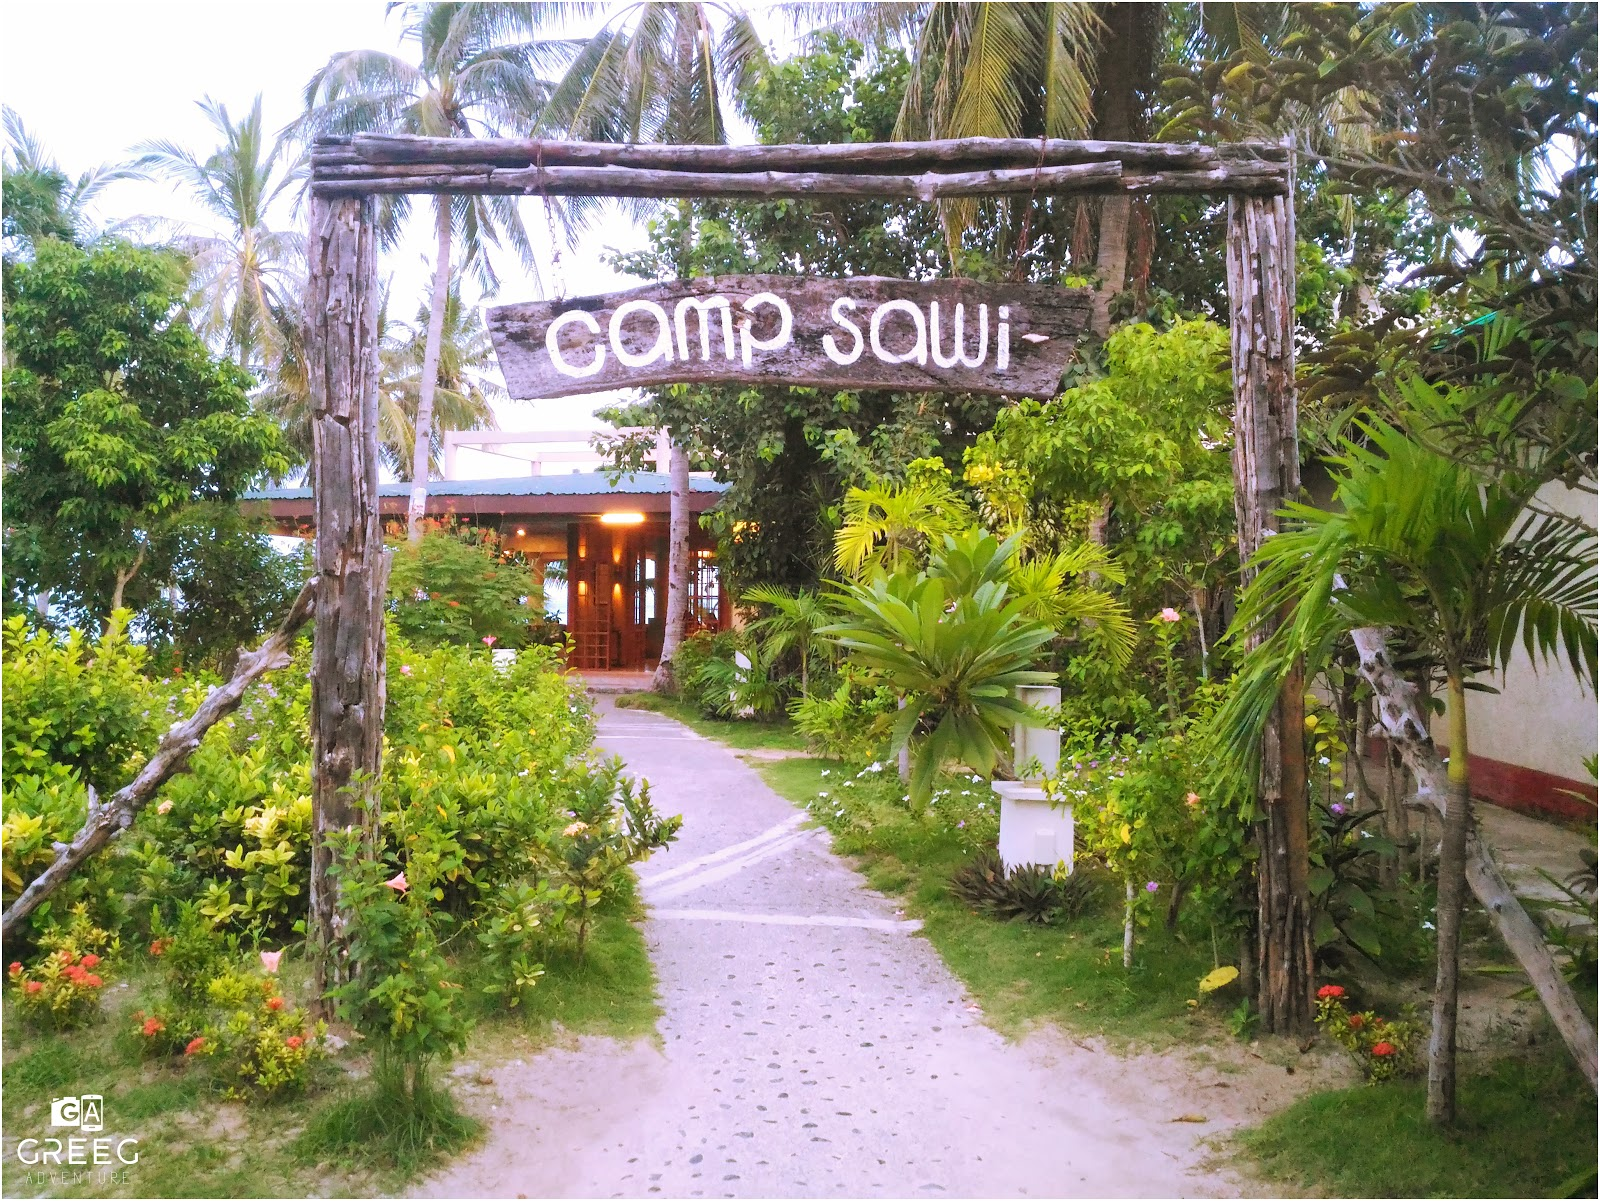 Bantayan Island Has A Bit Of Everything Culture Nature And Entertainment With Its Three Distinct Towns Santa Fe Proper Madridejos The